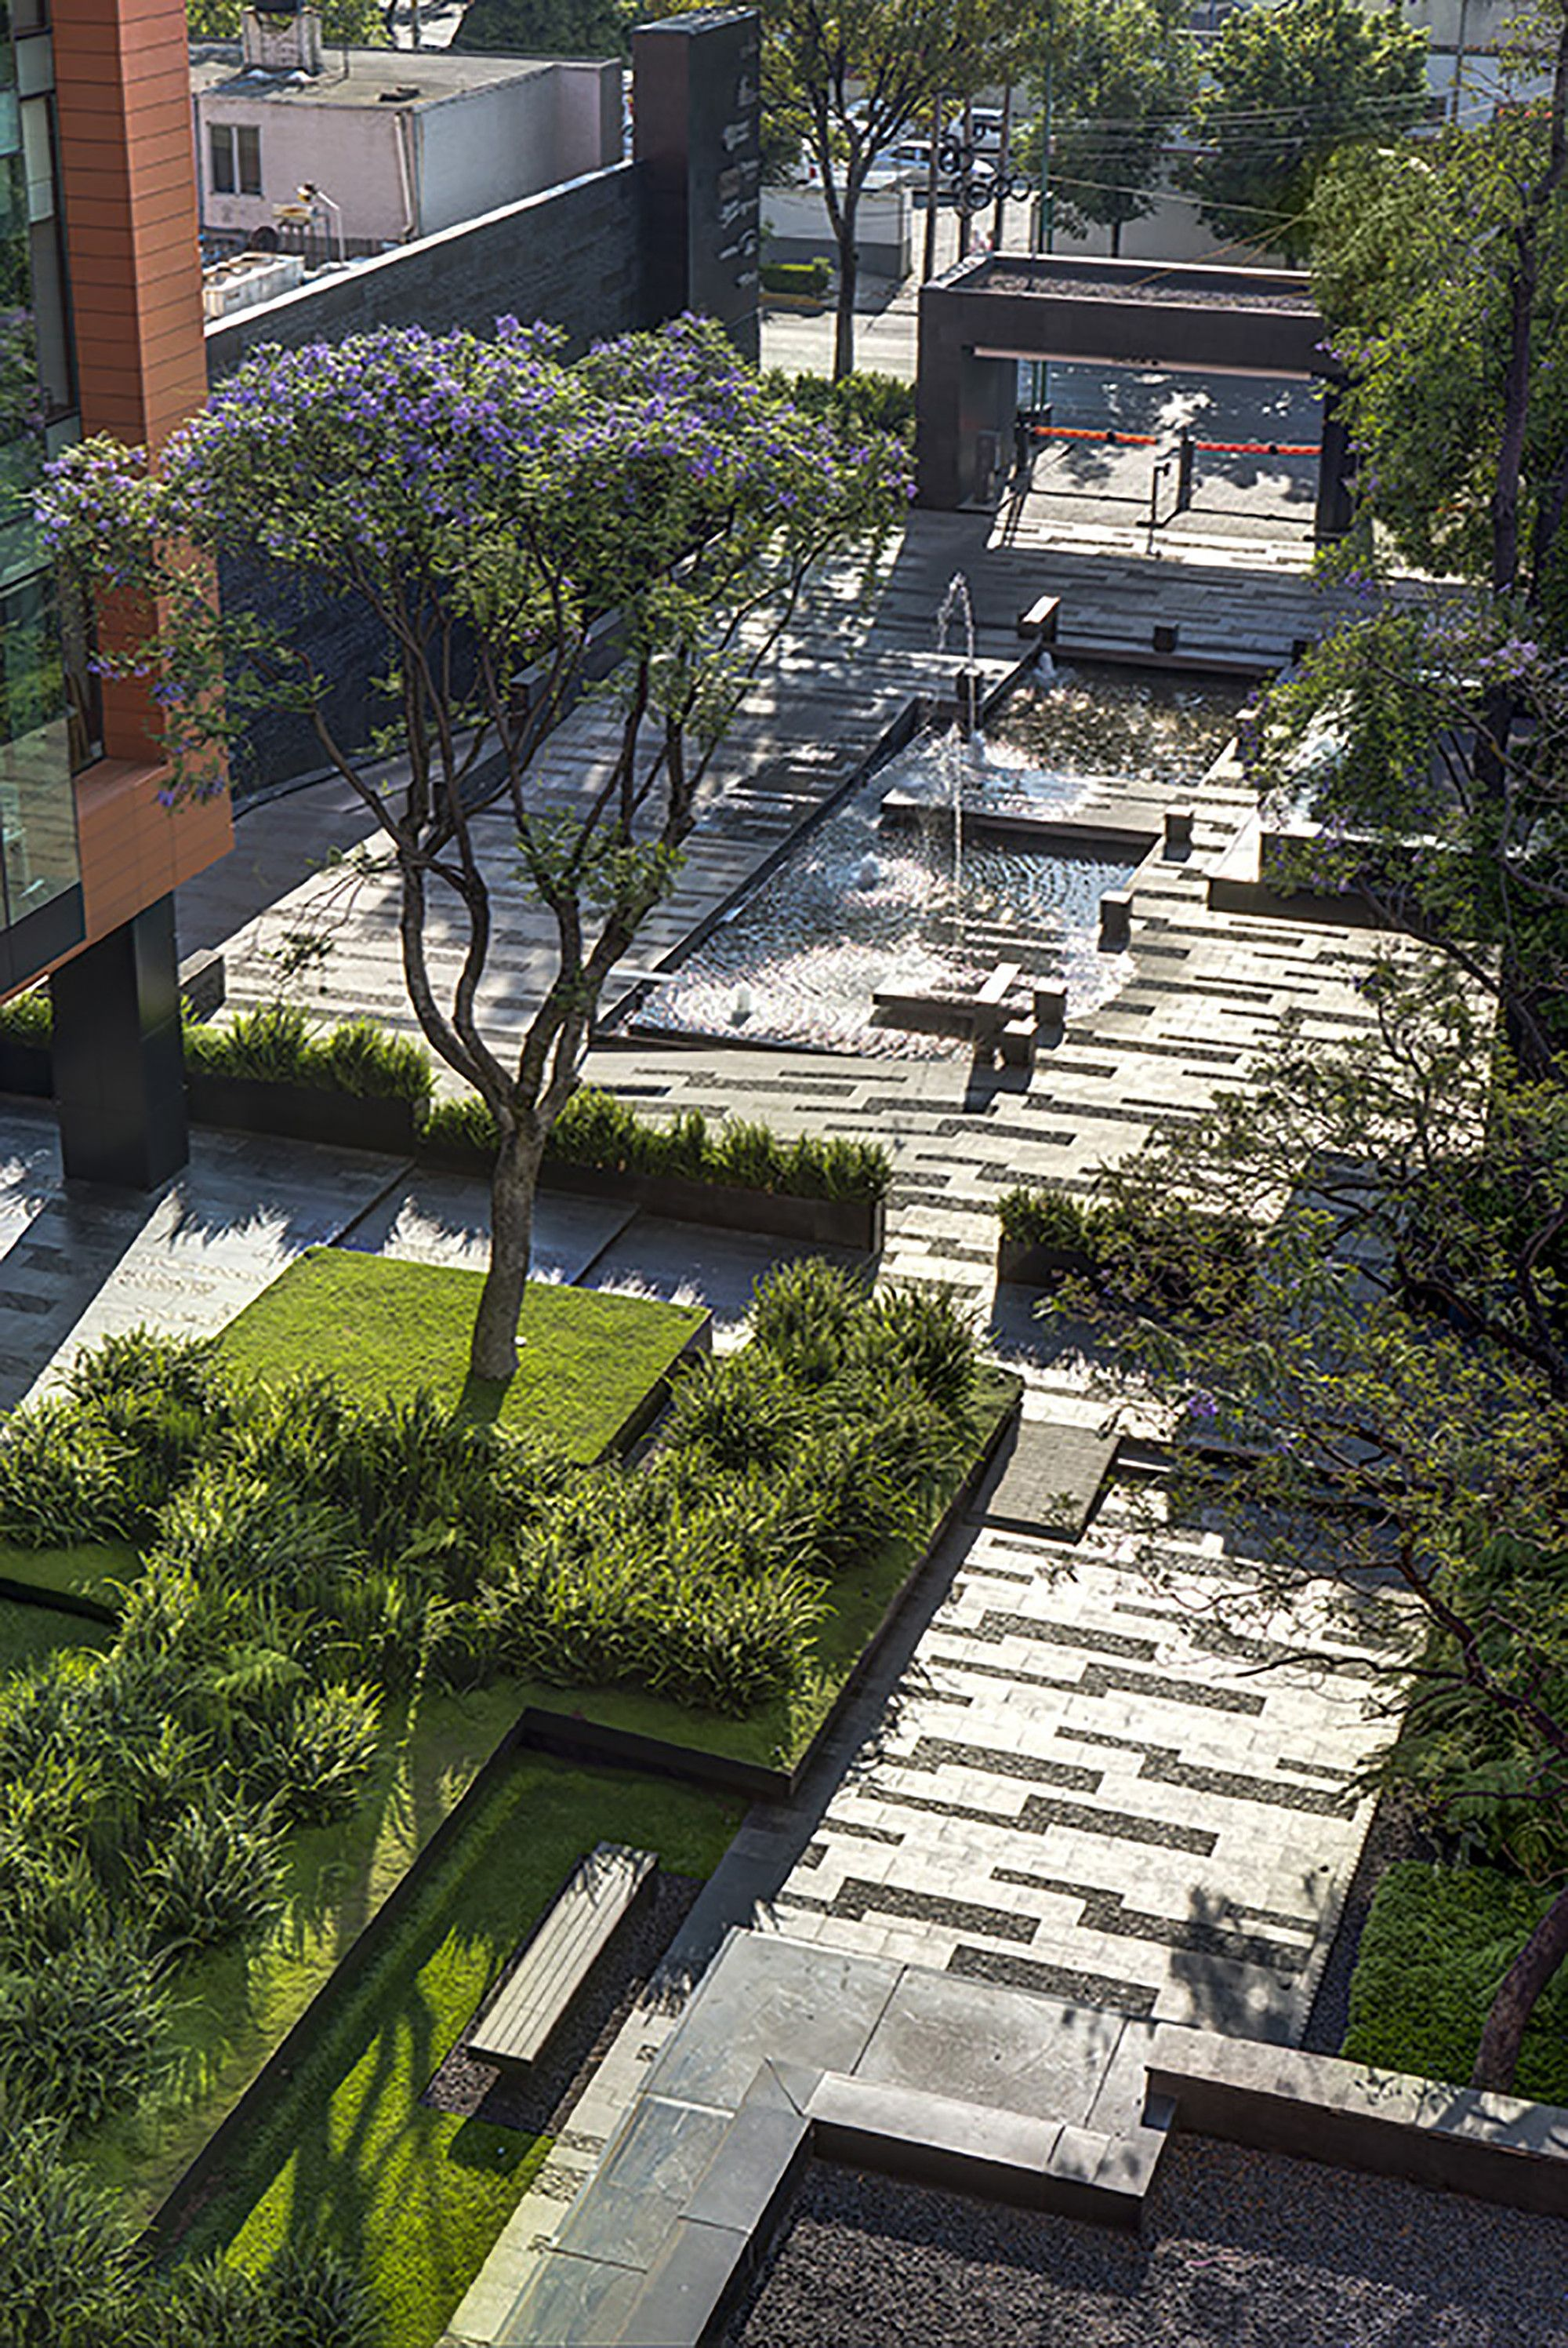 Galeria de paisagismo no campus corporativo coyoac n dlc for Urban landscape design